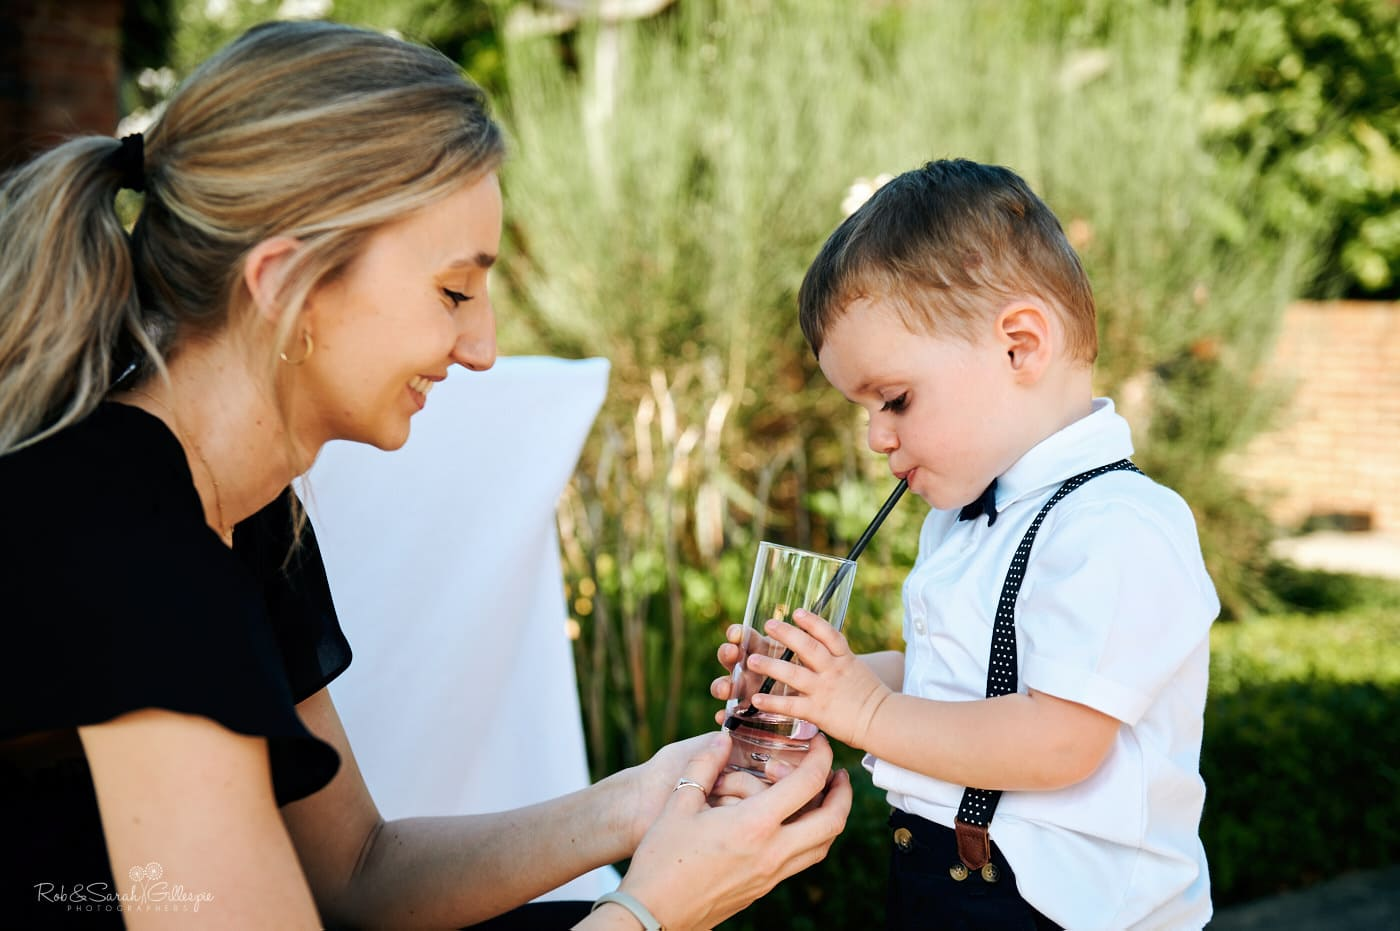 Female member of staff gives young boy drink on hot wedding day